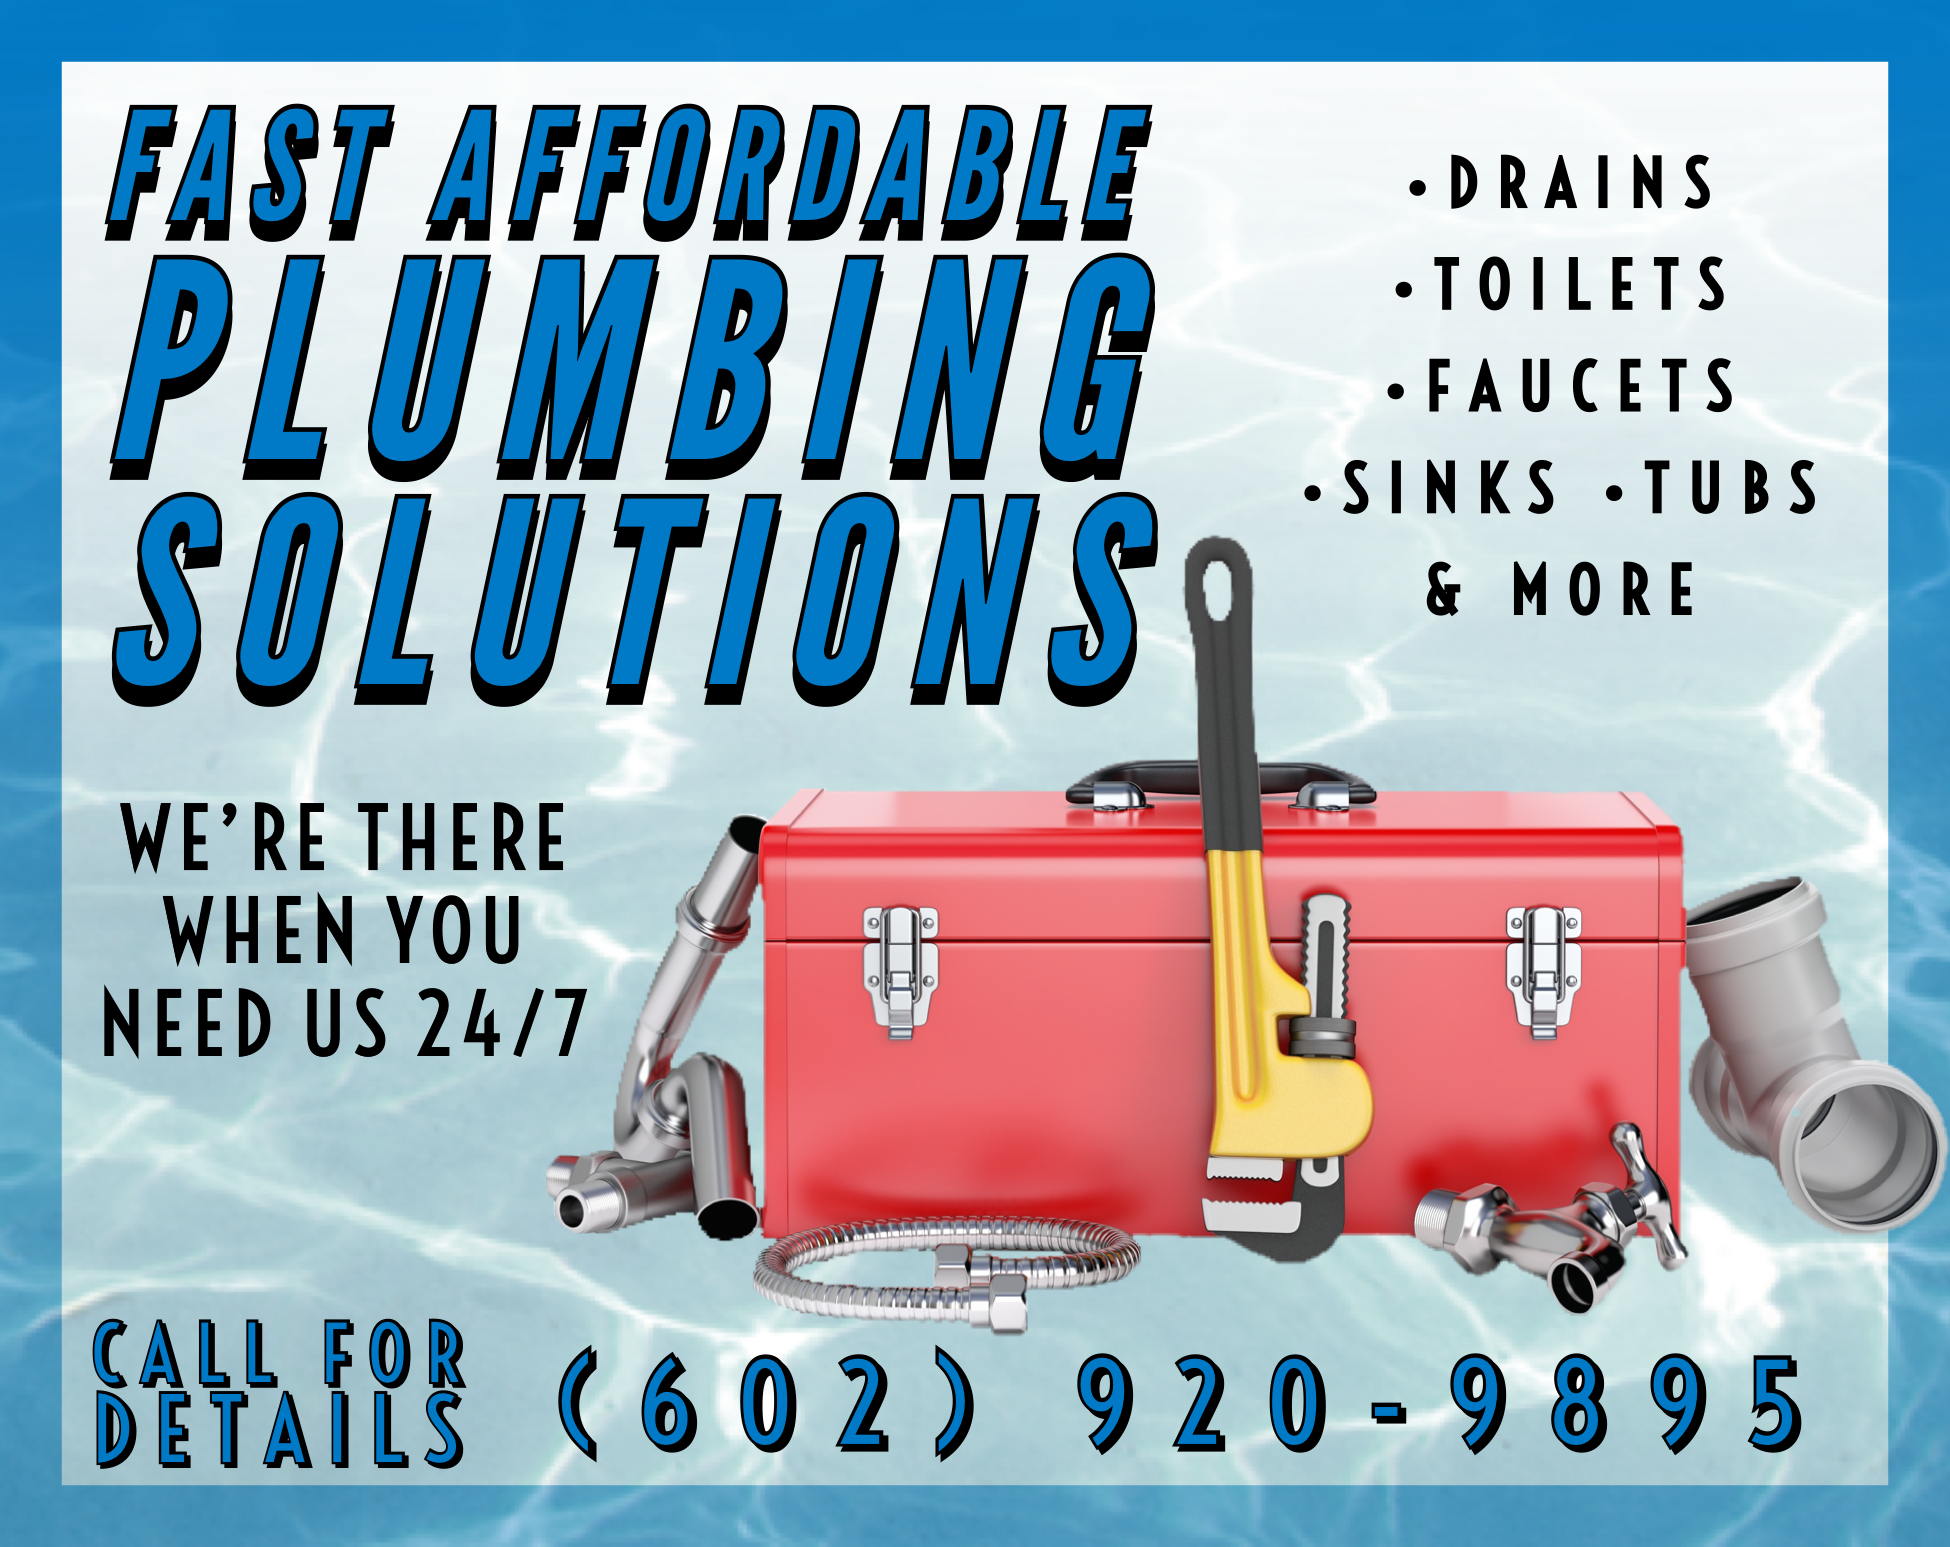 Plumbing ⌦ Drain Cleaning ⌦Plumber ⌦ UPFRONT PRICES